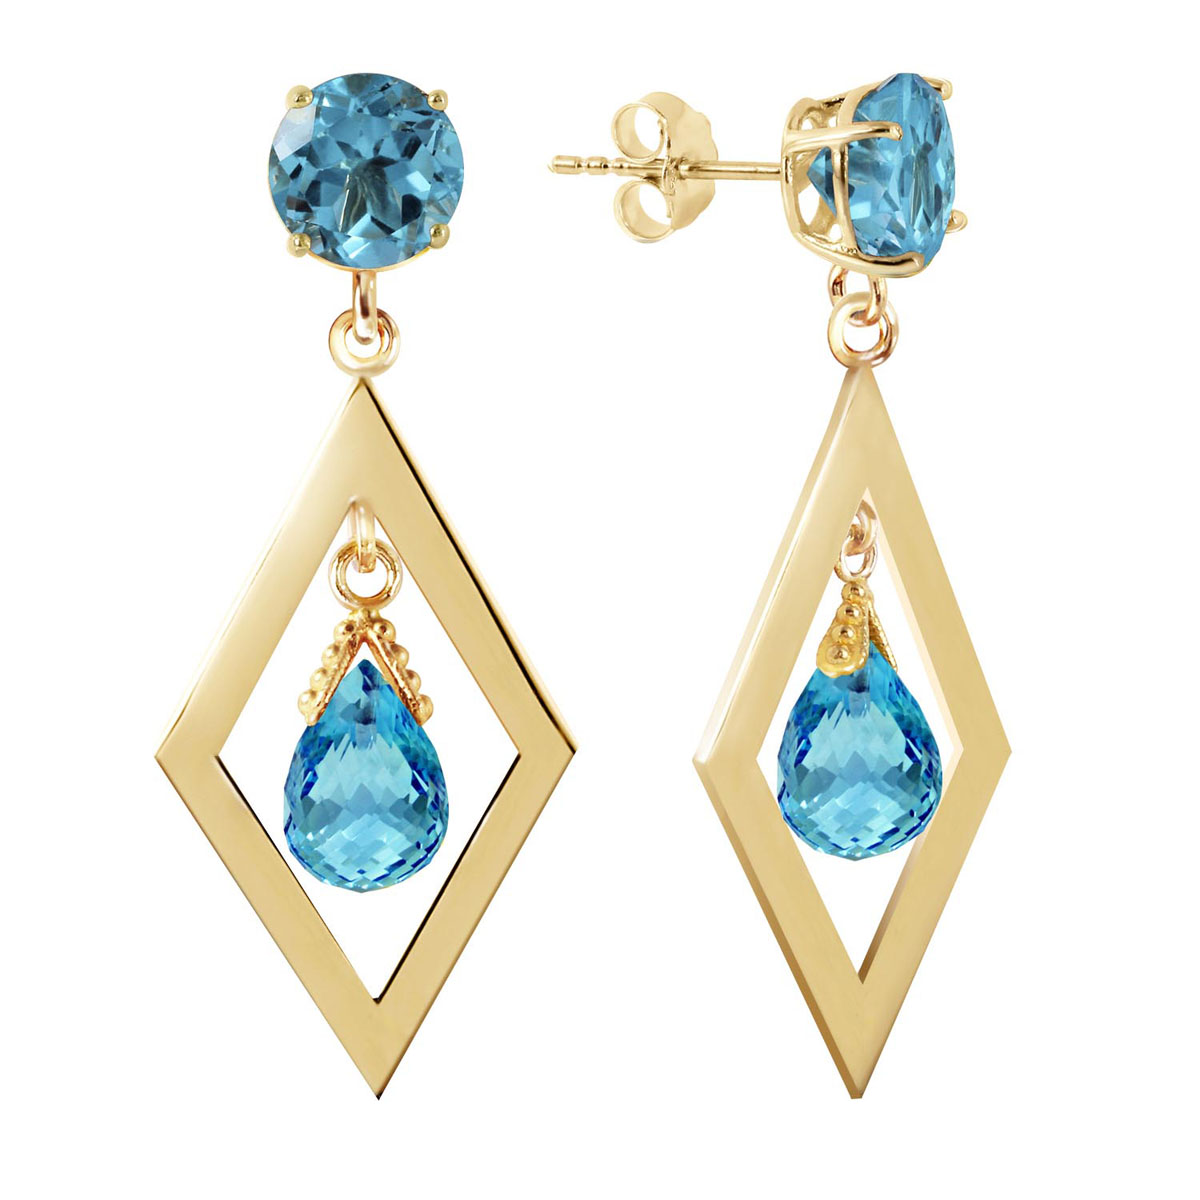 Blue Topaz Kite Drop Earrings 2.4 ctw in 9ct Gold